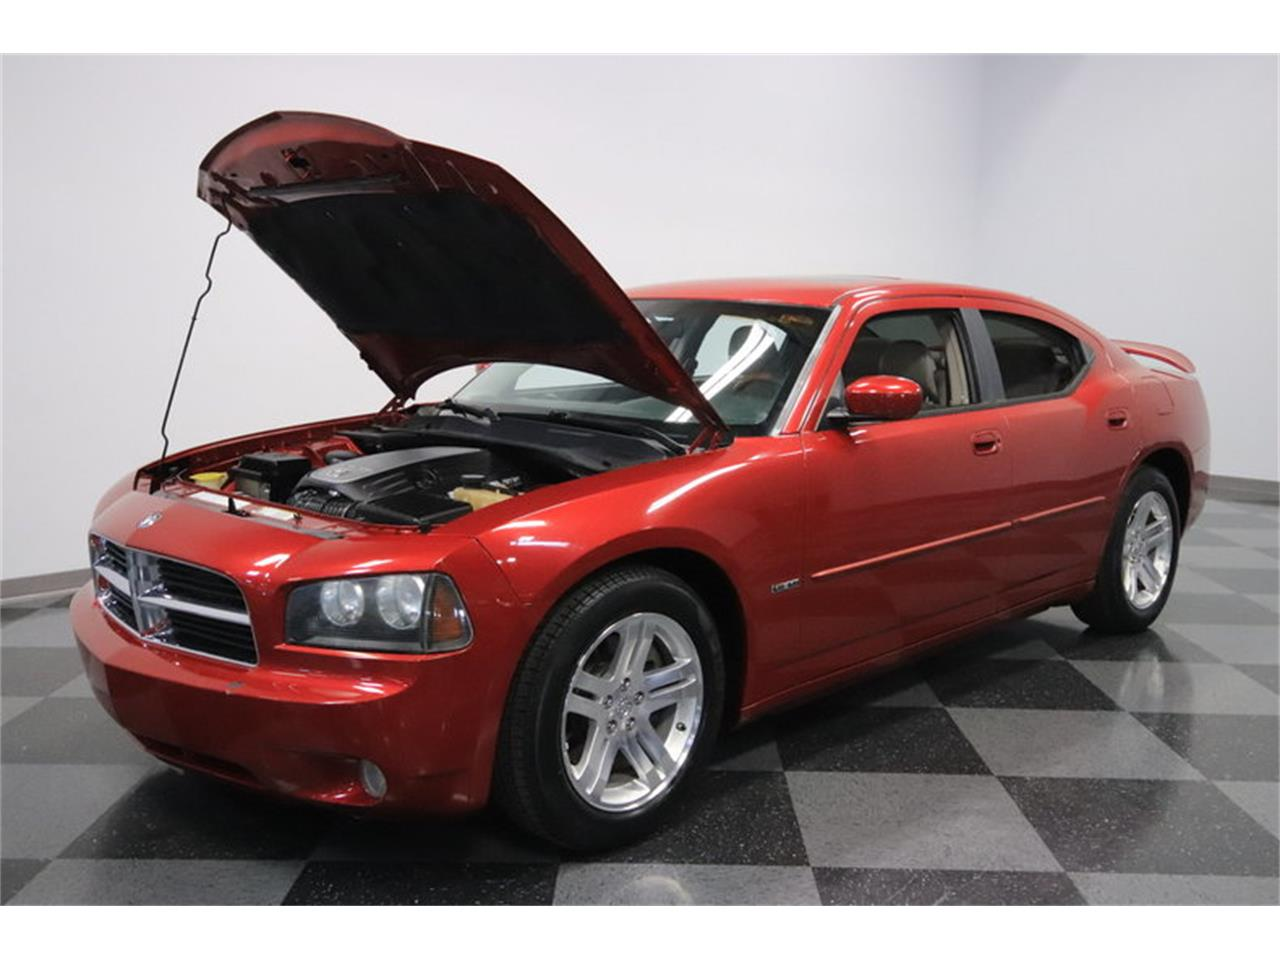 Large Picture of '06 Charger R/T - $8,995.00 Offered by Streetside Classics - Phoenix - MZDF